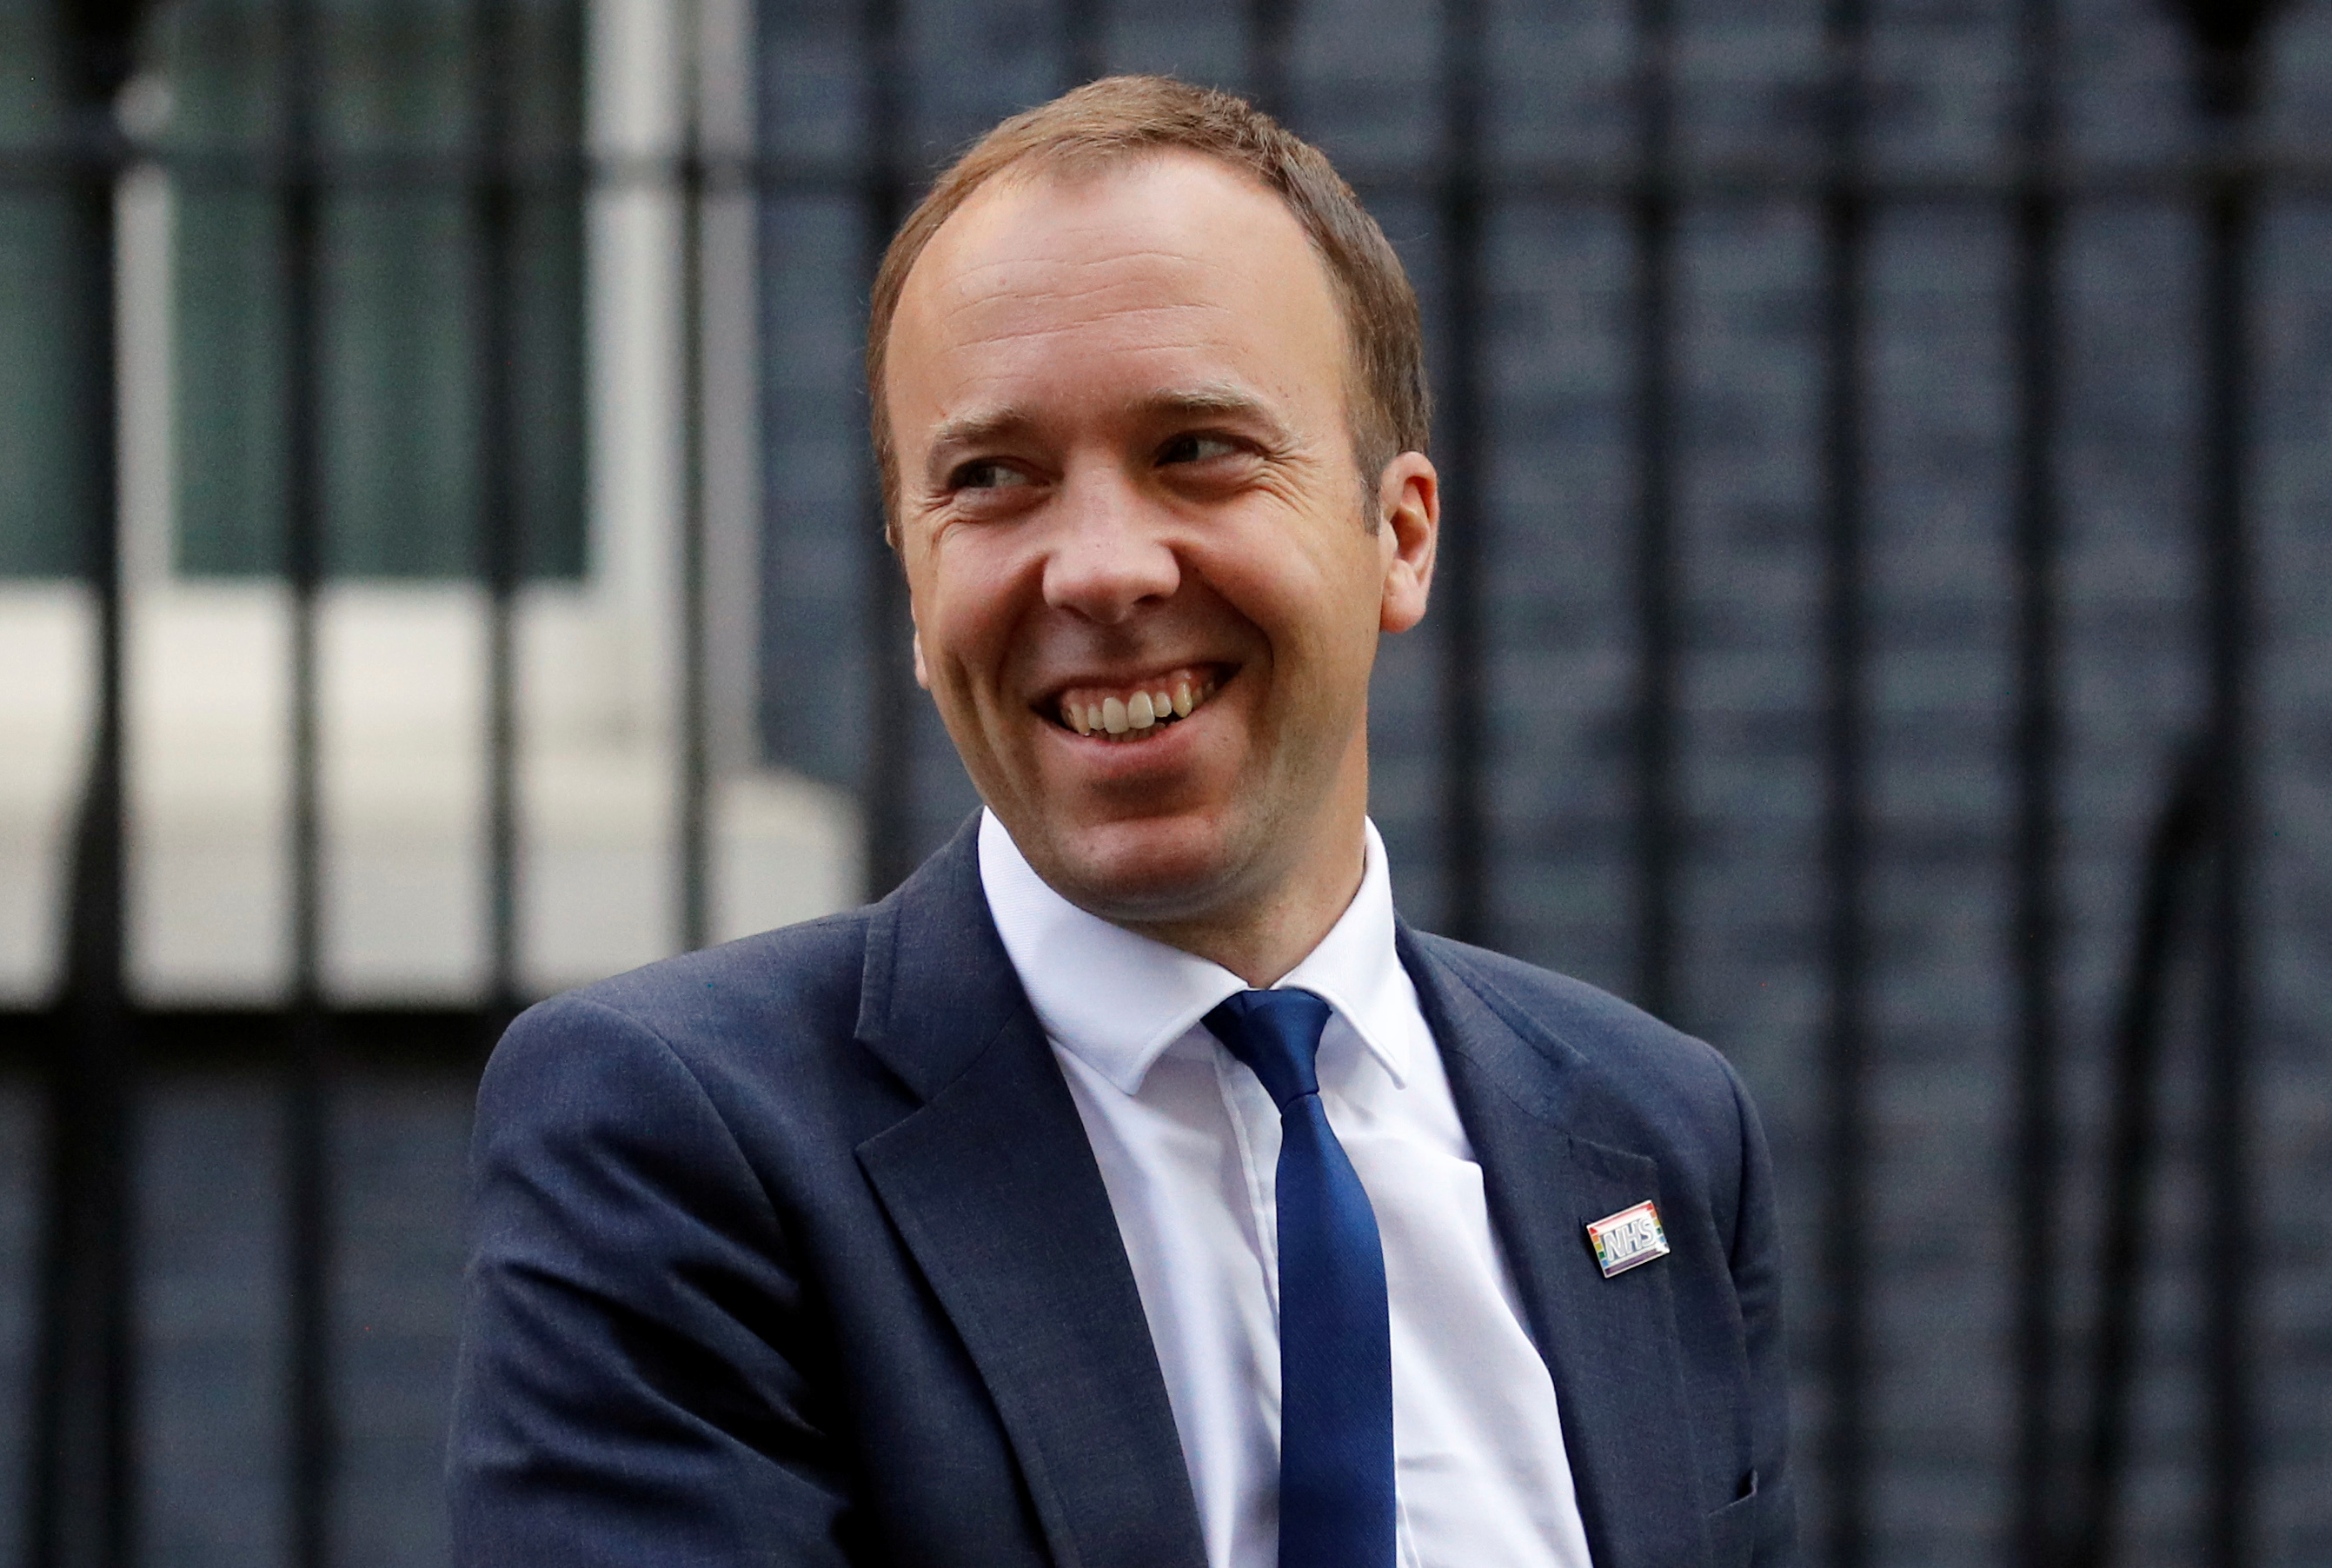 """Giving an insight into the government's plans for the winter seasonal flu jabs, the health secretary said he wanted pharmacies to be involved in the rollout of """"the biggest flu vaccination programme in history."""" (Photo: REUTERS/Phil Noble)."""